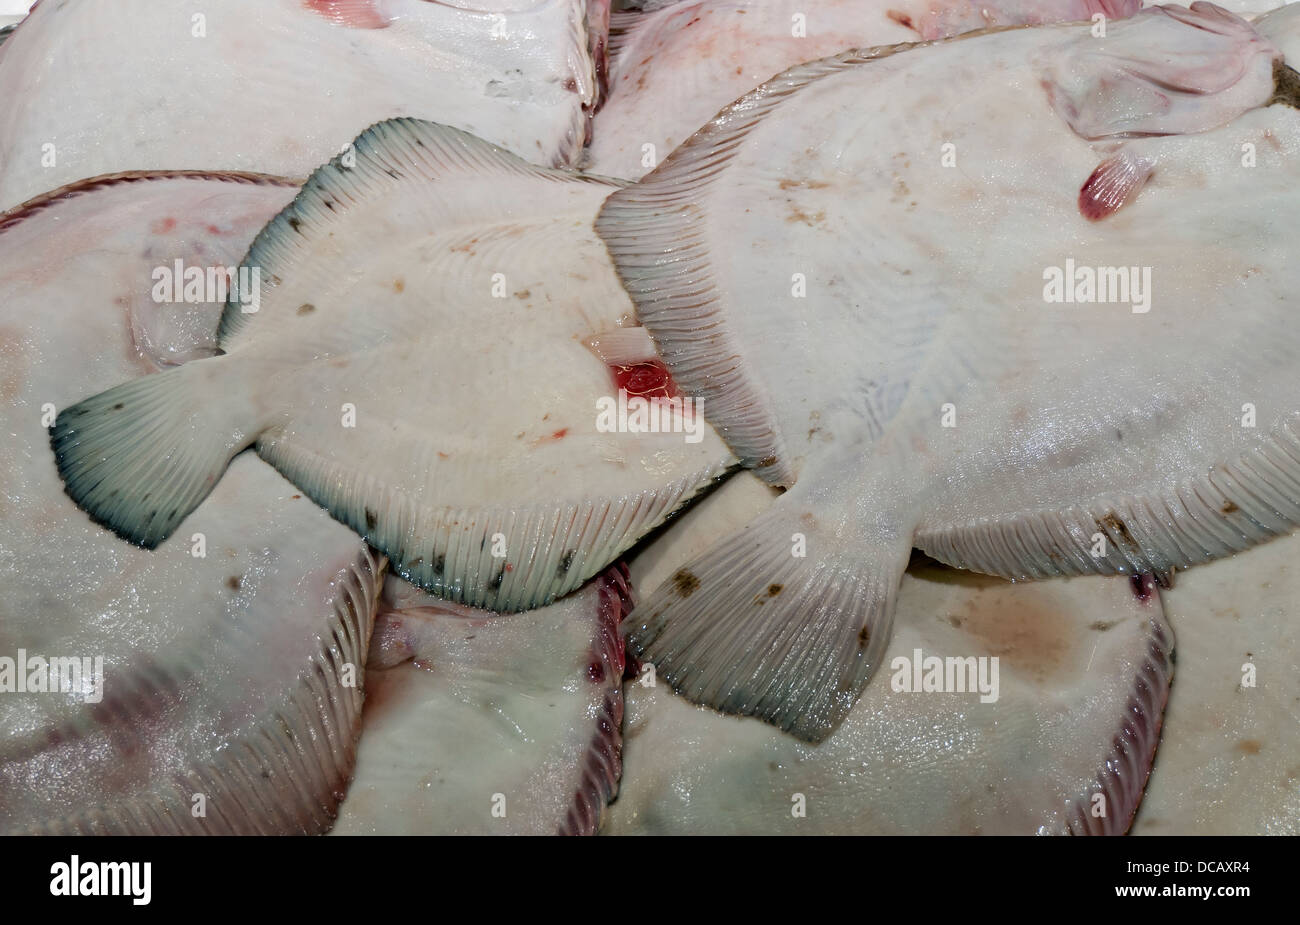 Close-up of Flatfish at Billingsgate Fish Market, Isle of Dogs, London, England, UK - Stock Image